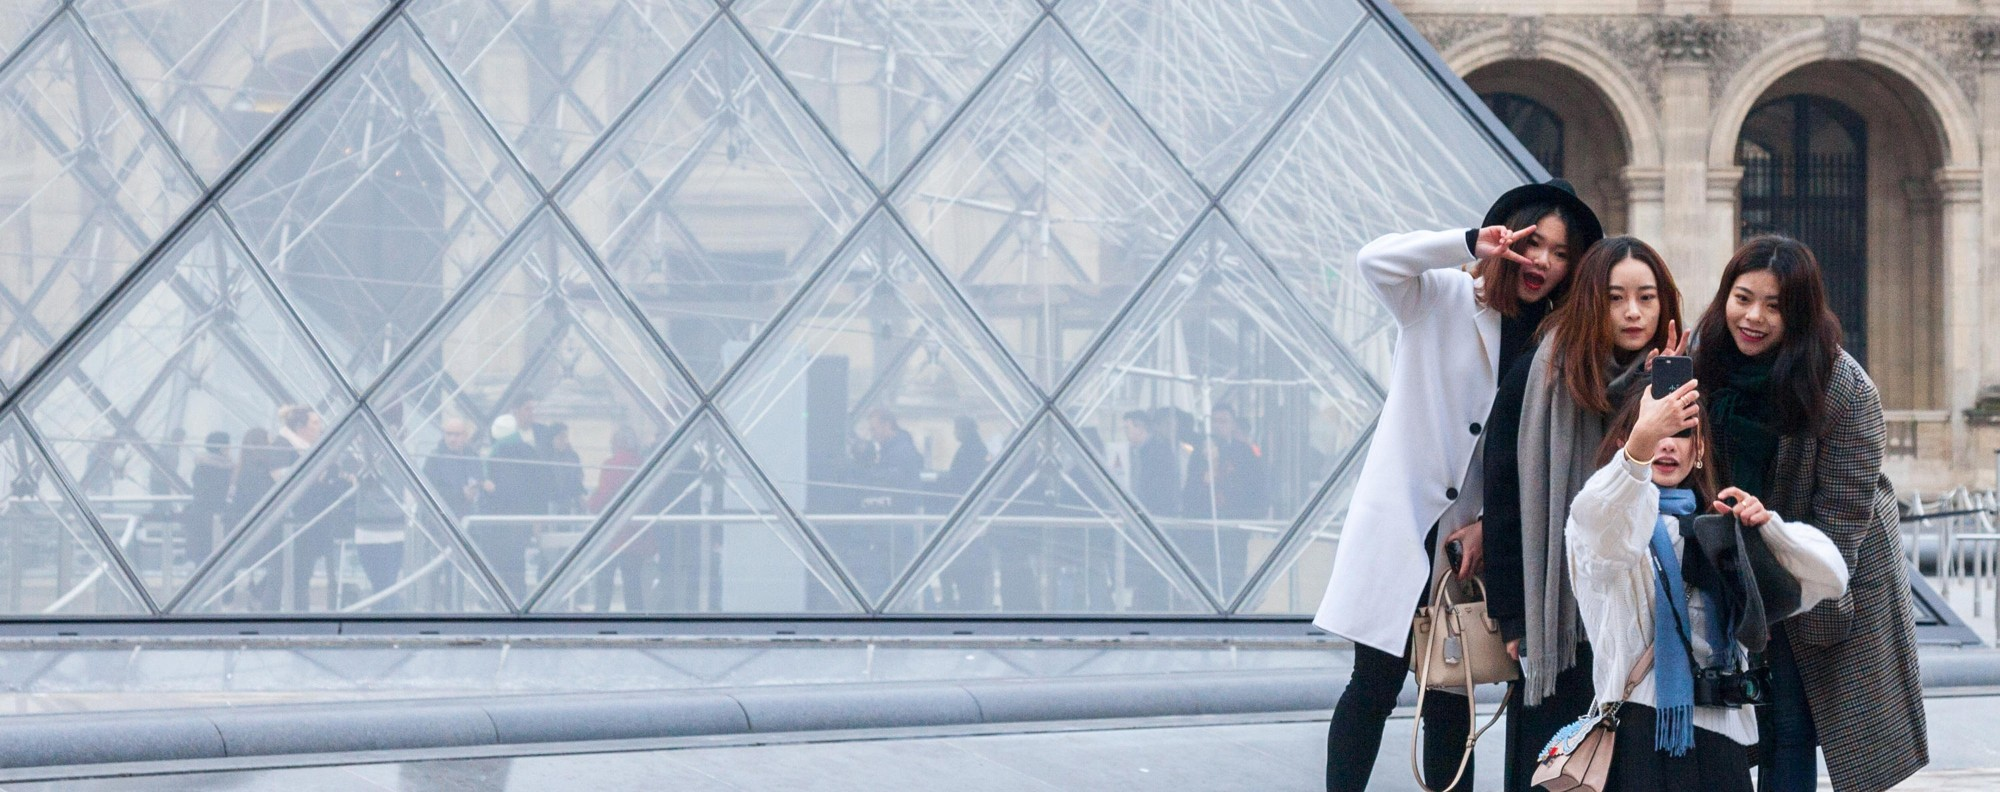 Chinese tourists at the Louvre Pyramid, in Paris, France. Picture: Alamy